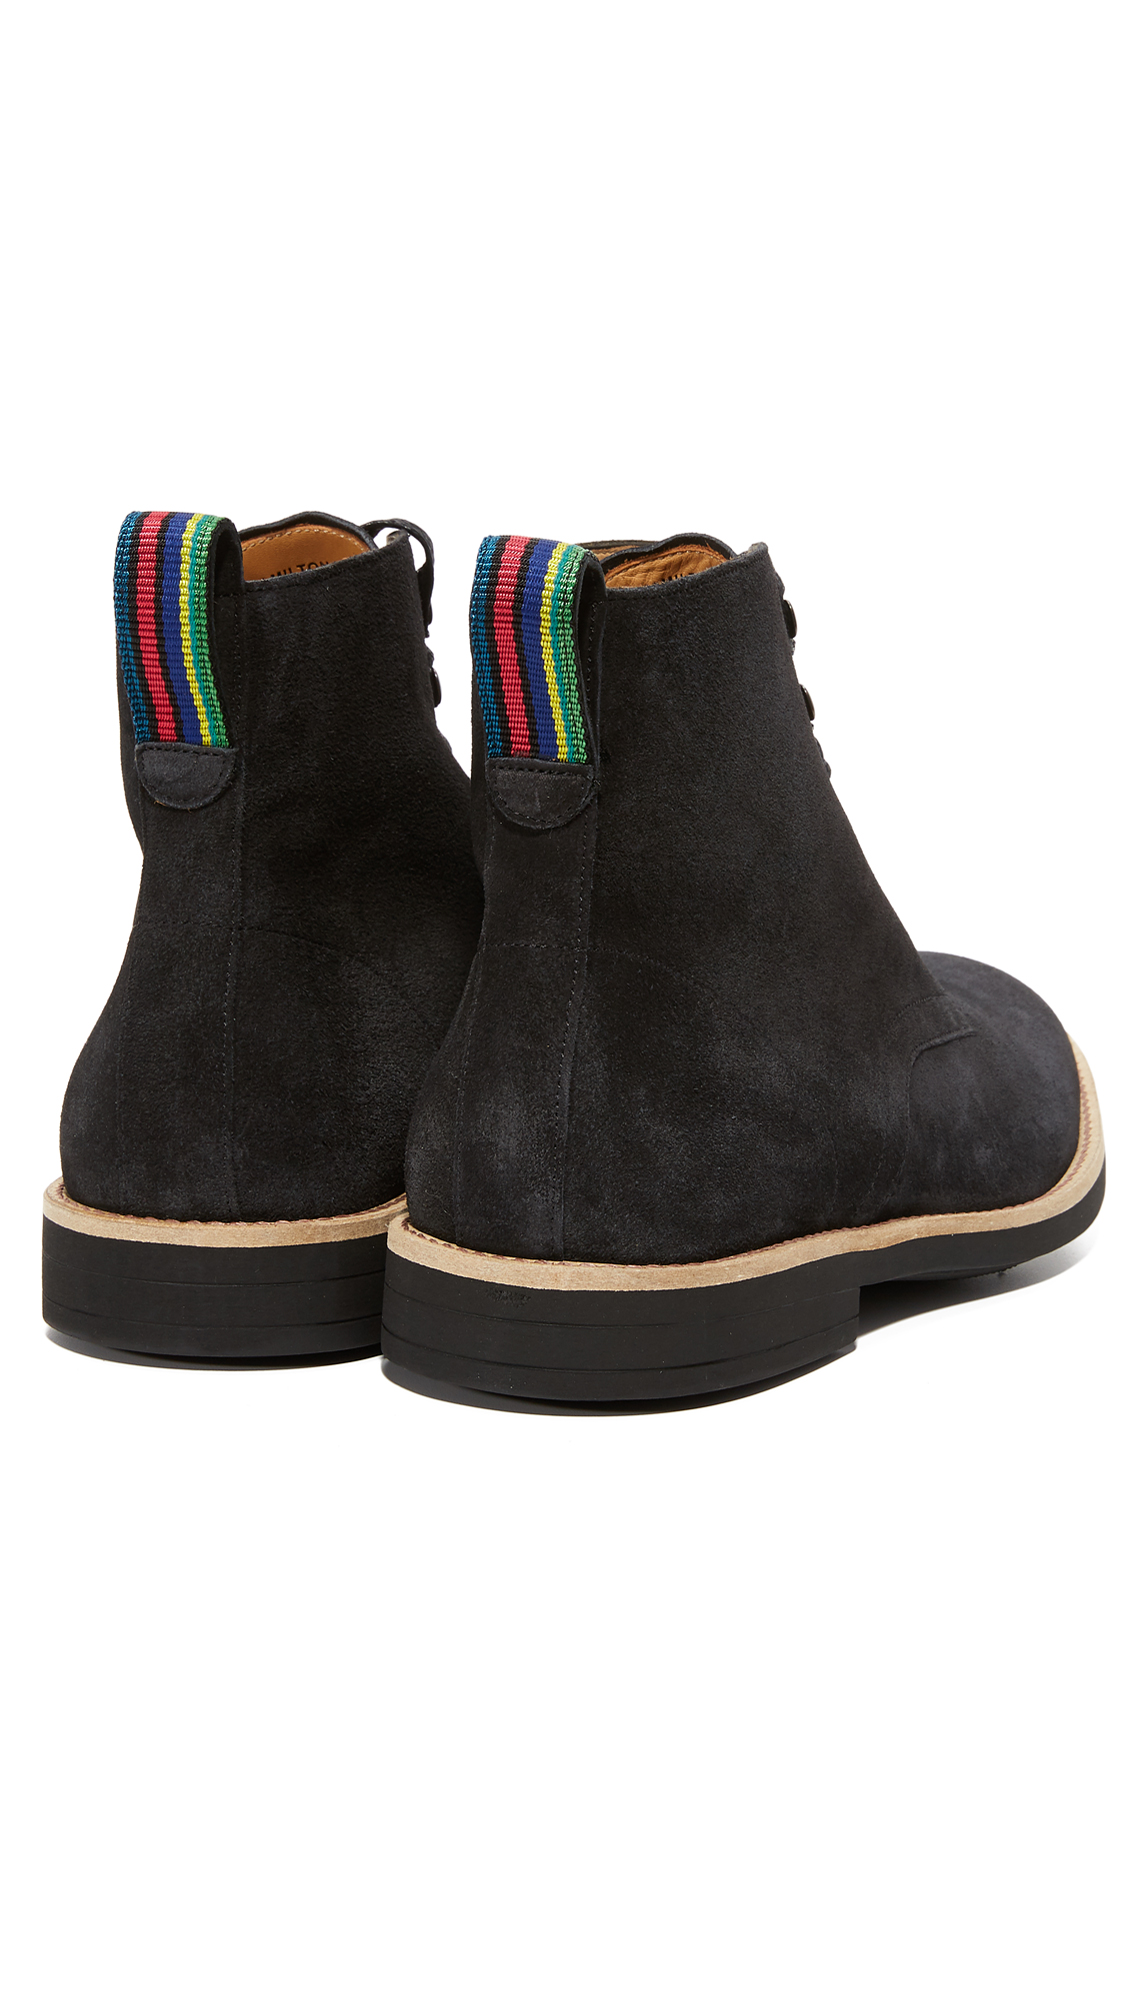 PS BY PAUL SMITH Hamilton Leather Boots in Black